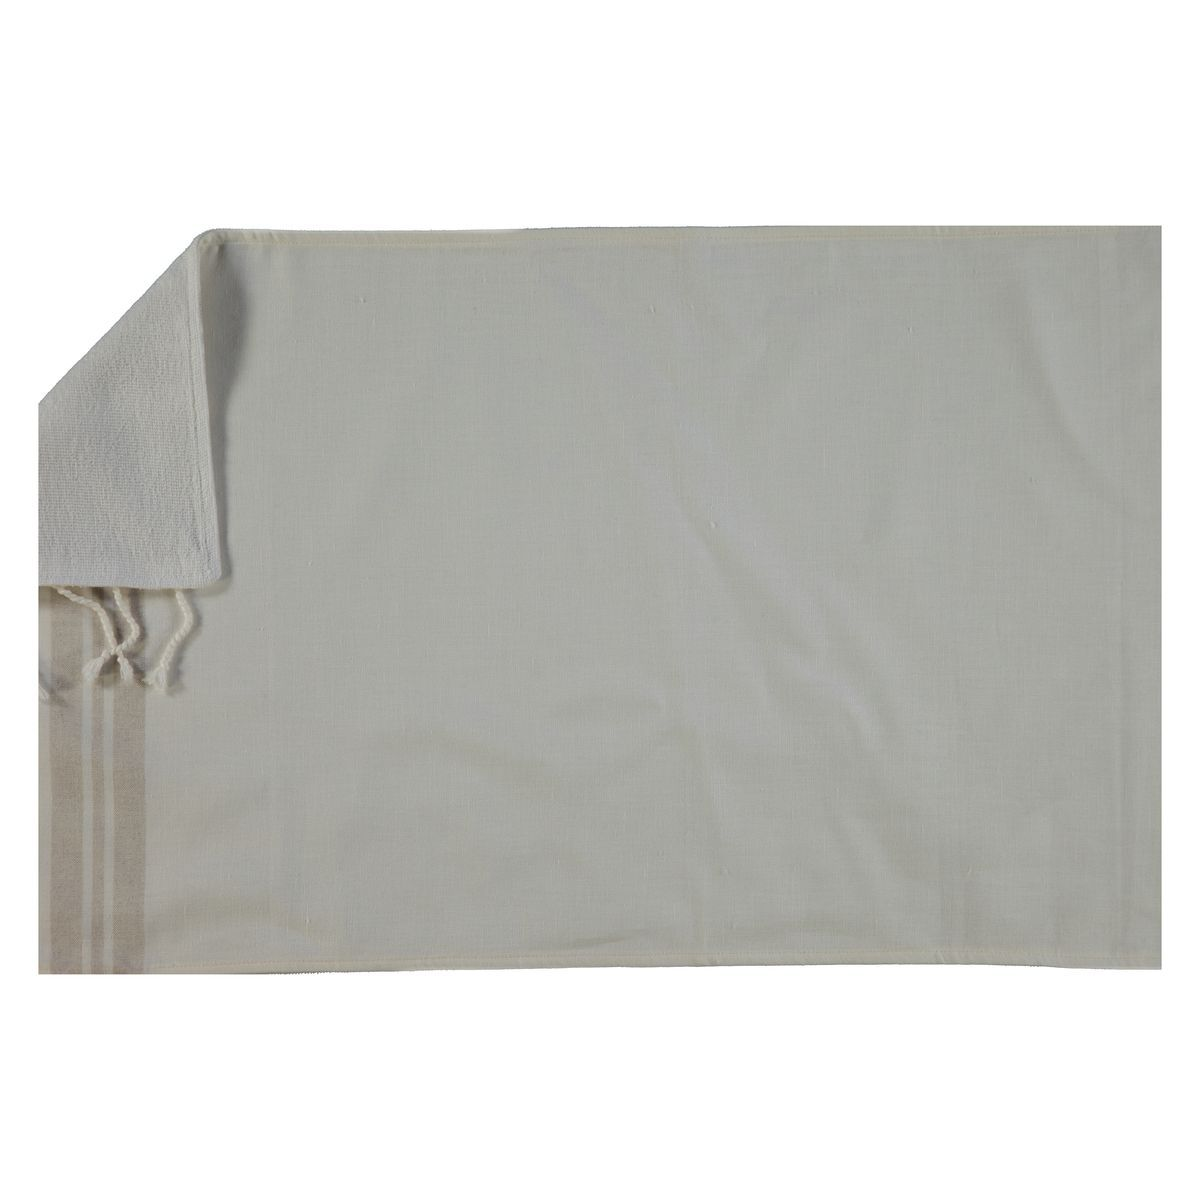 Peshtowel Mini / Double Face - White / Beige